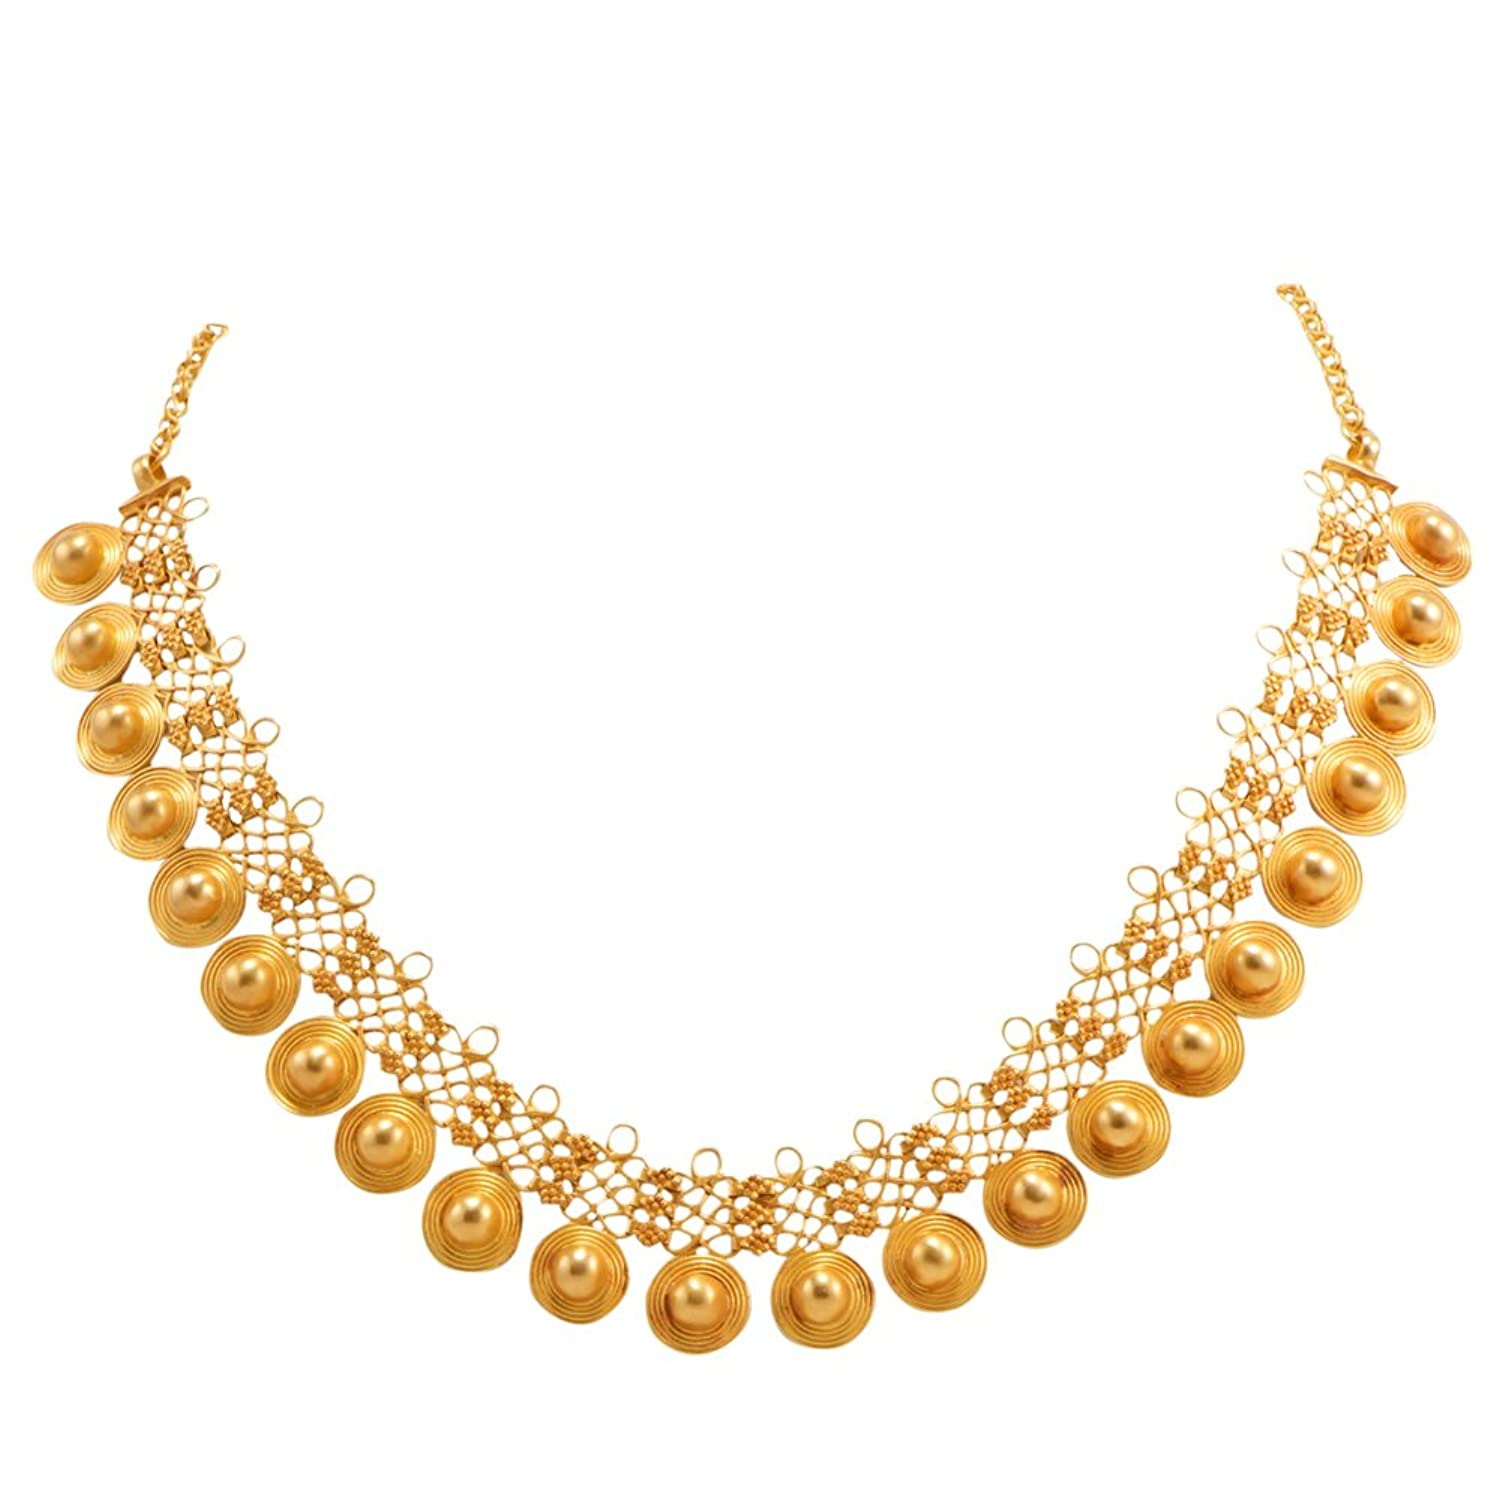 necklaces african set detail plated sets buy gold designer product on necklace alibaba weight light com